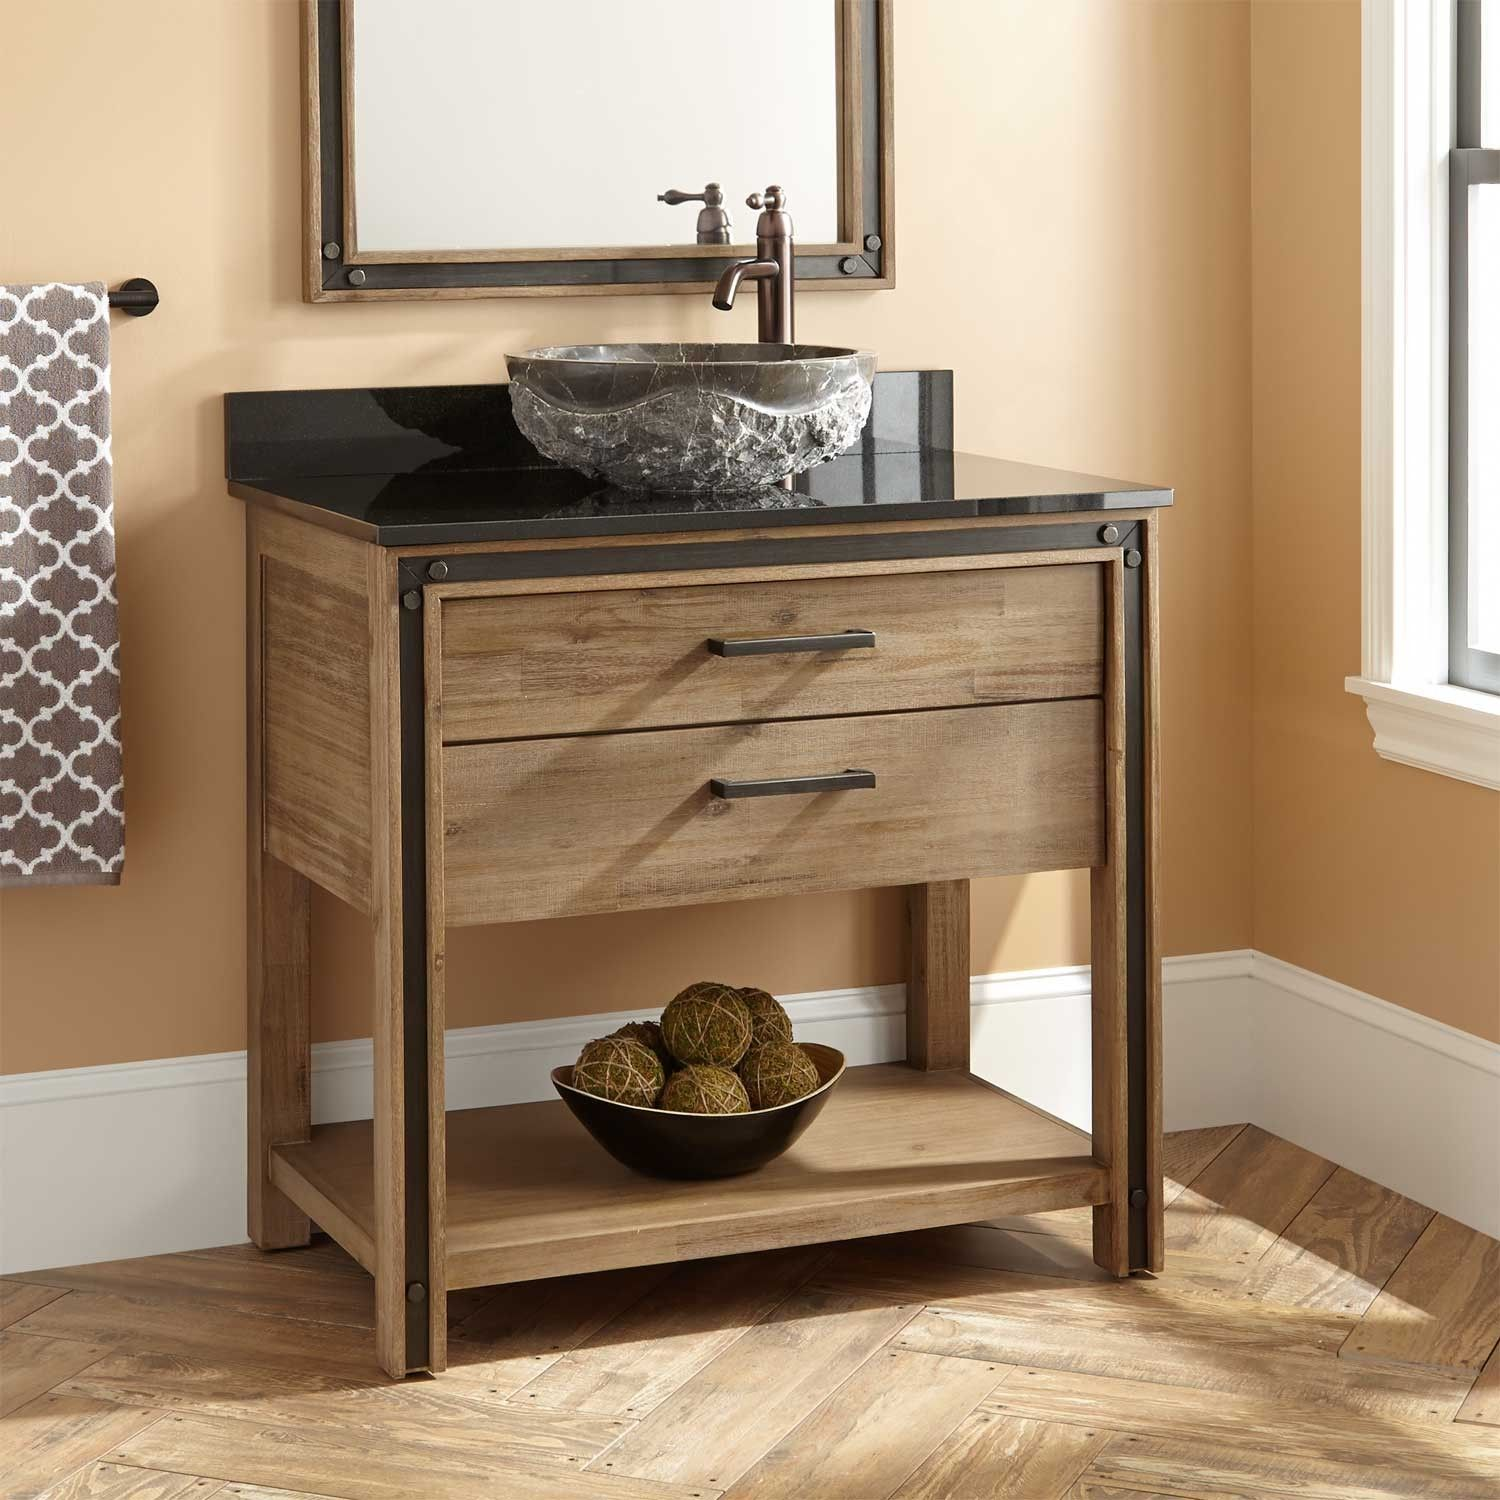 36 Celebration Vanity For Vessel Sink Bathroom Vanity Designs